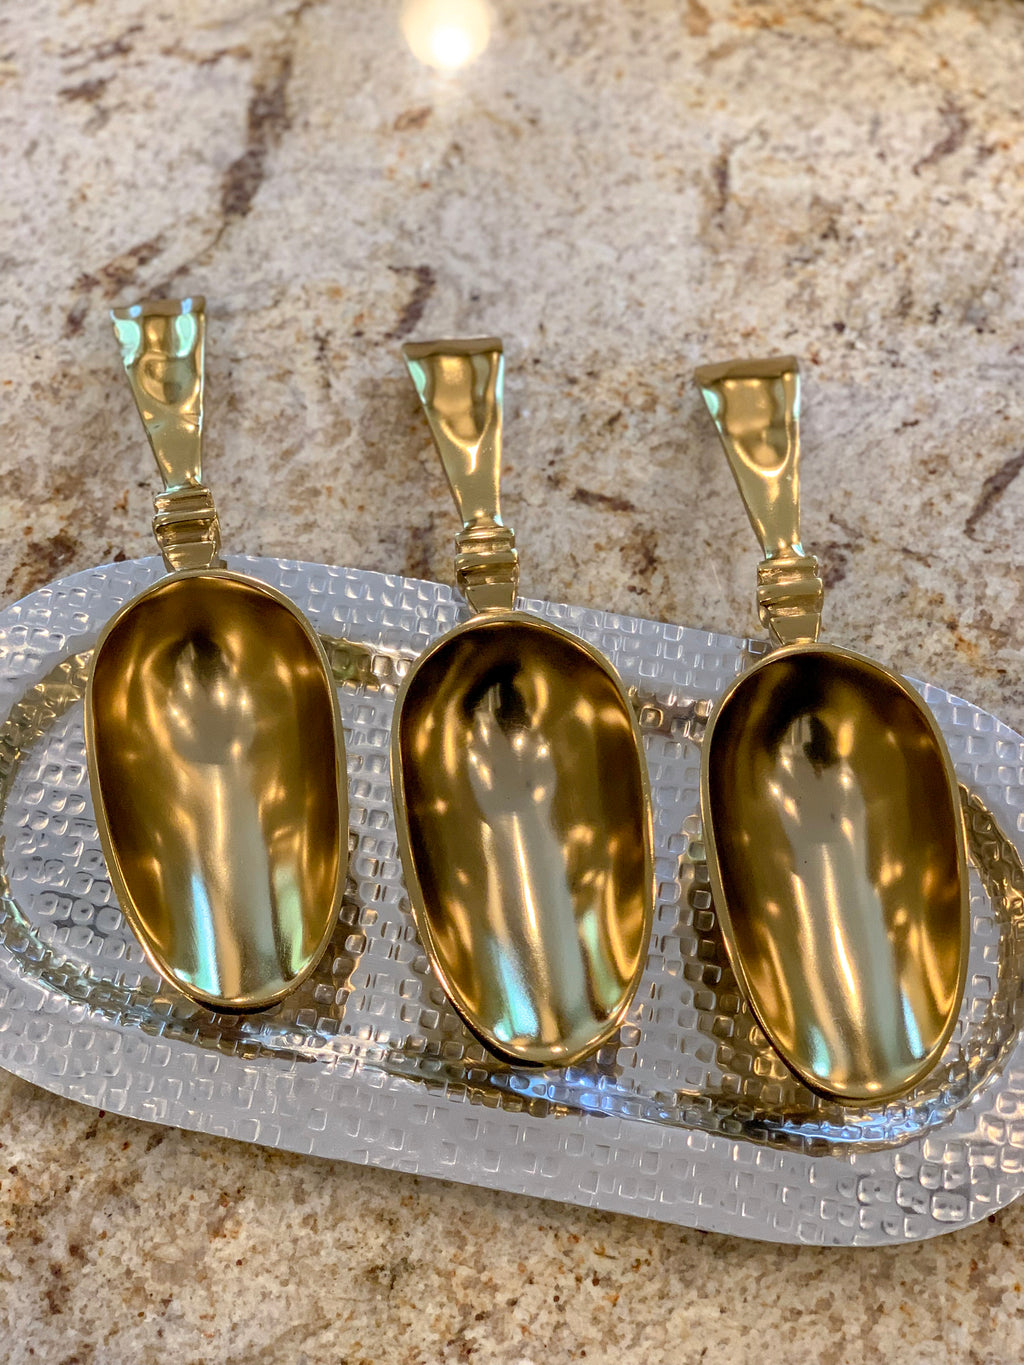 Gold Gilded Ice Scoop-Inspire Me! Home Decor